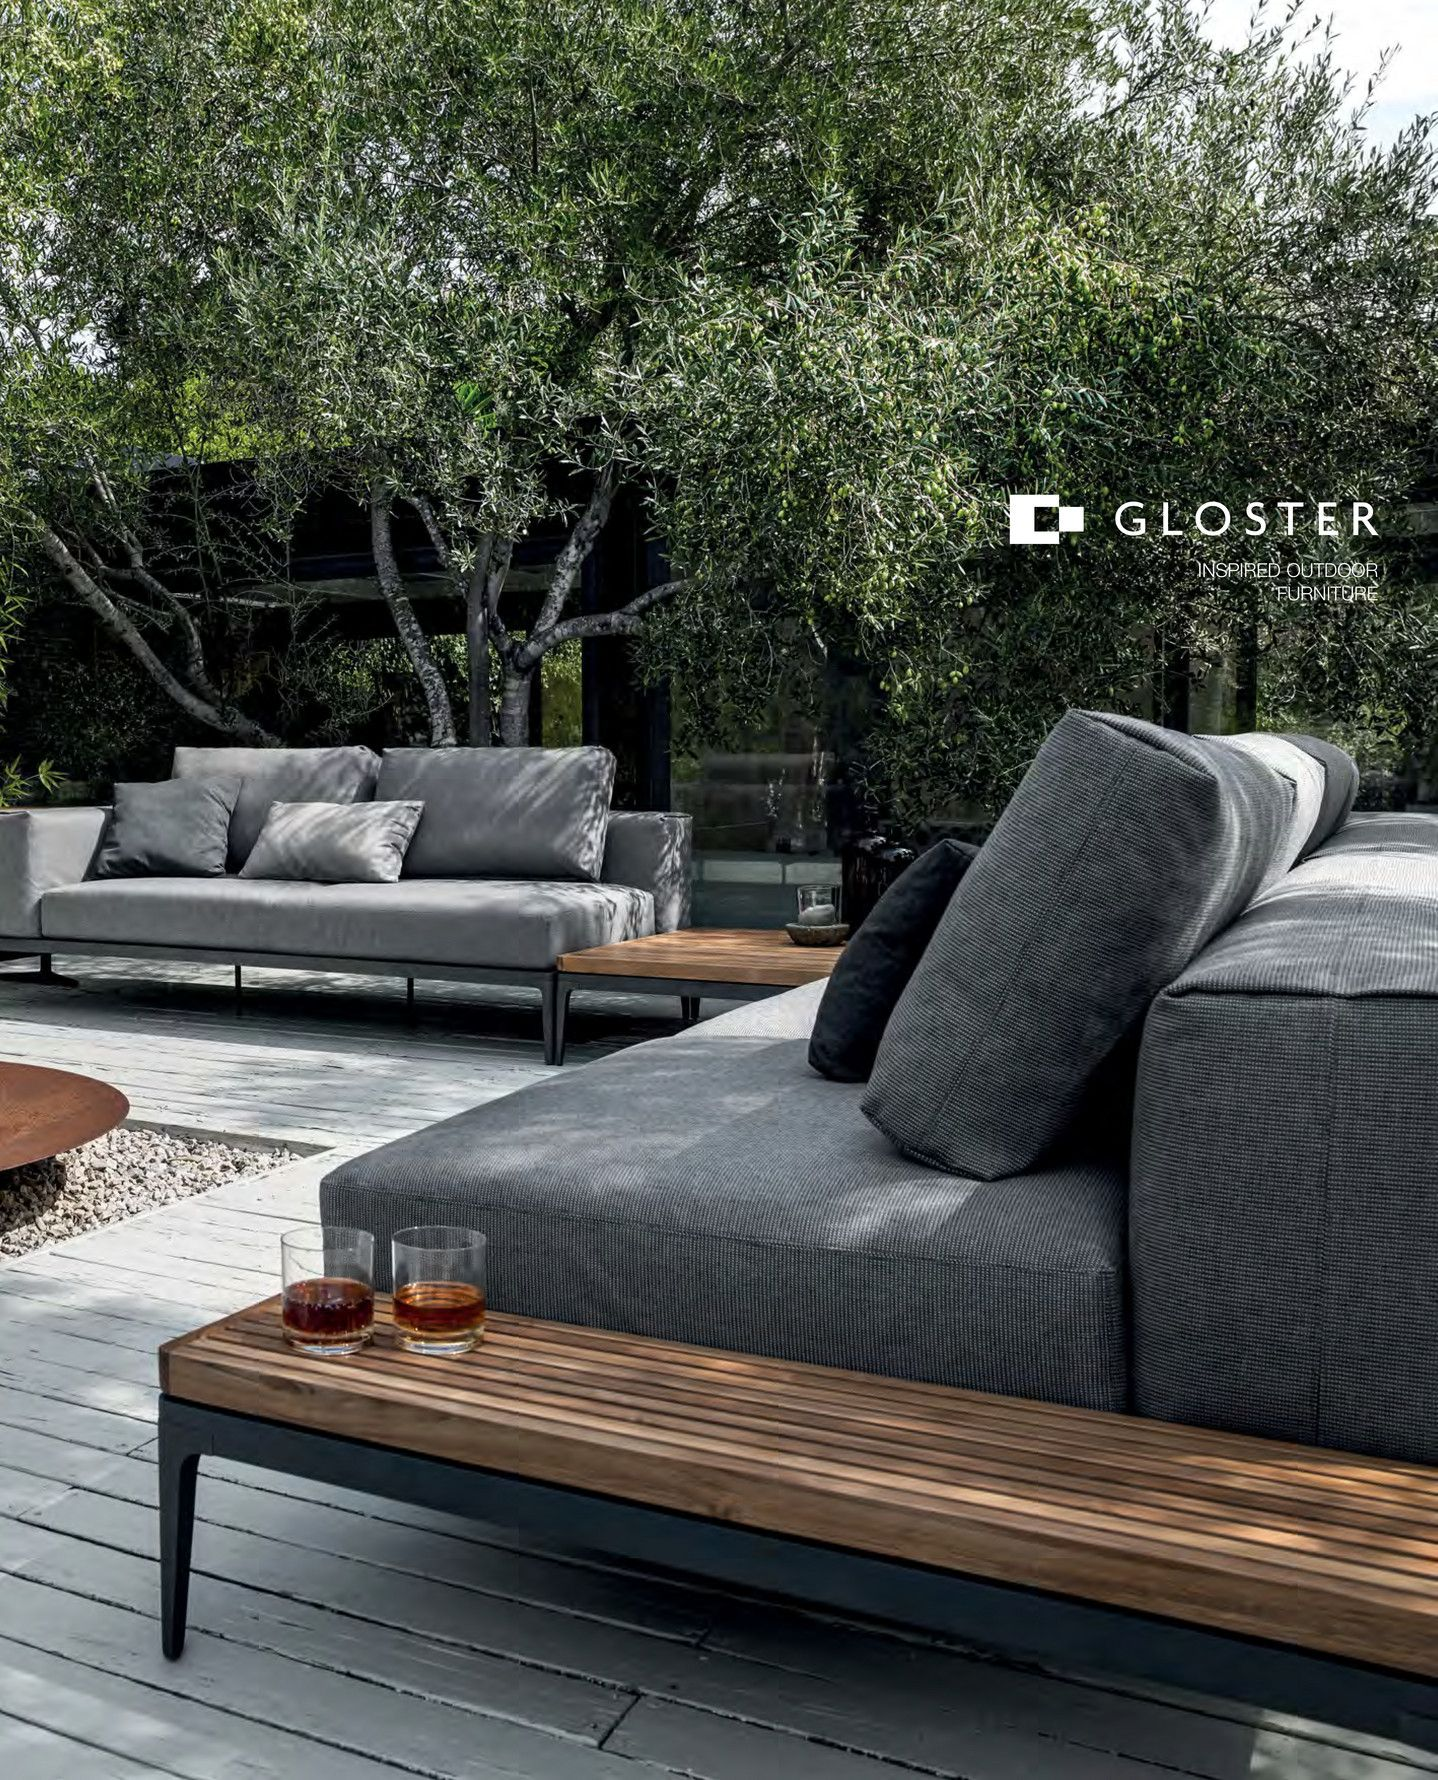 Etonnant The Gloster Range Incorporates Both Classic And Contemporary Designs To  Cater For All Tastes And Requirements. Gloster Outdoor Patio Furniture ...